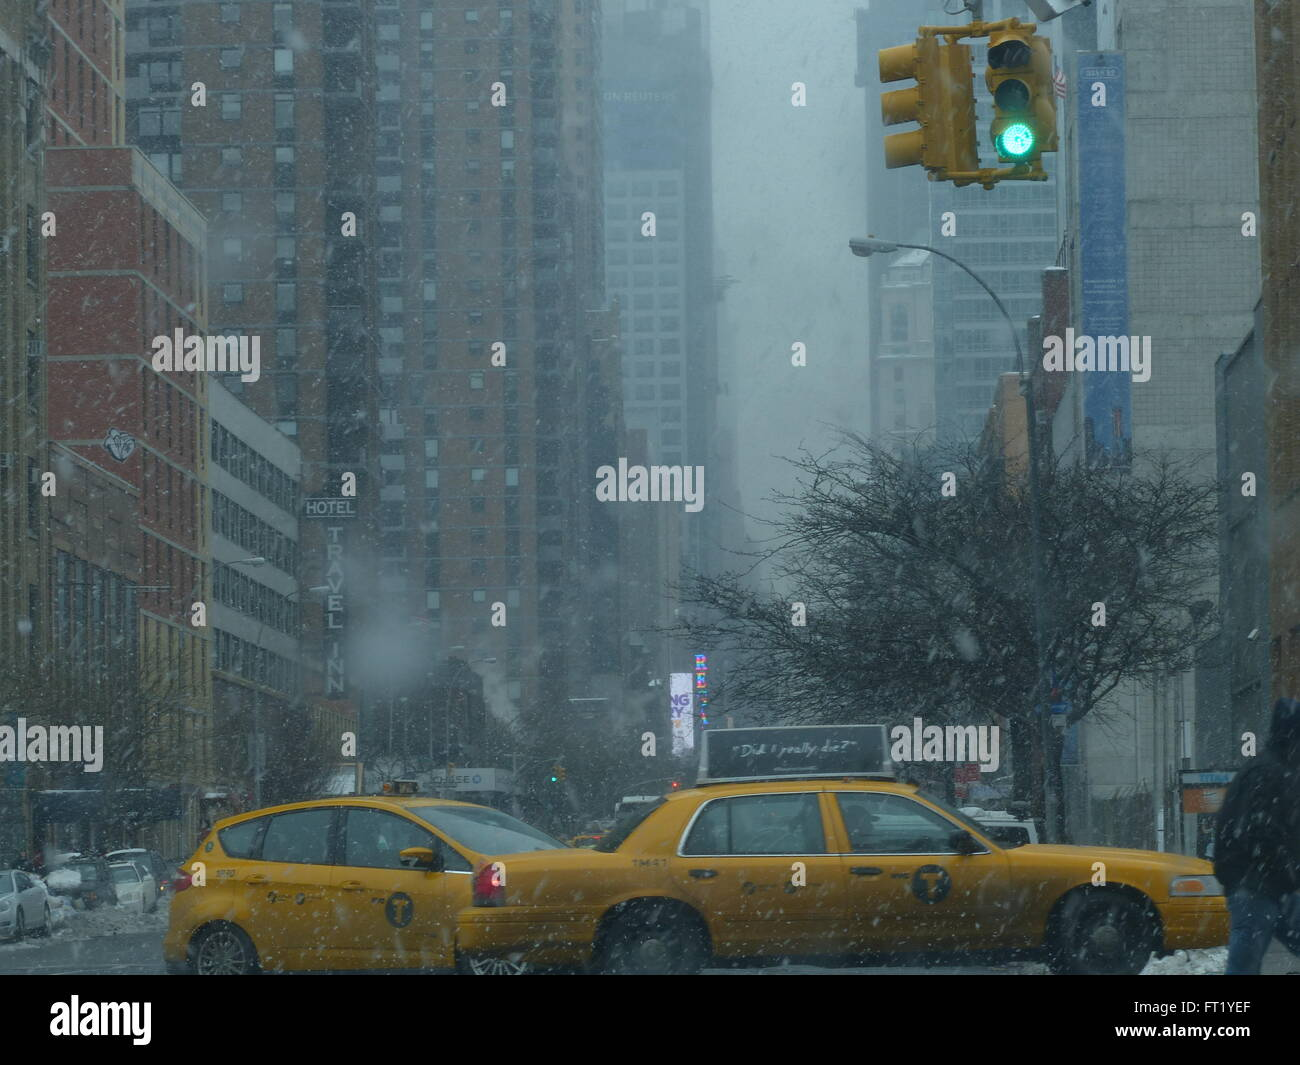 NYC taxicab during snow storm - Stock Image